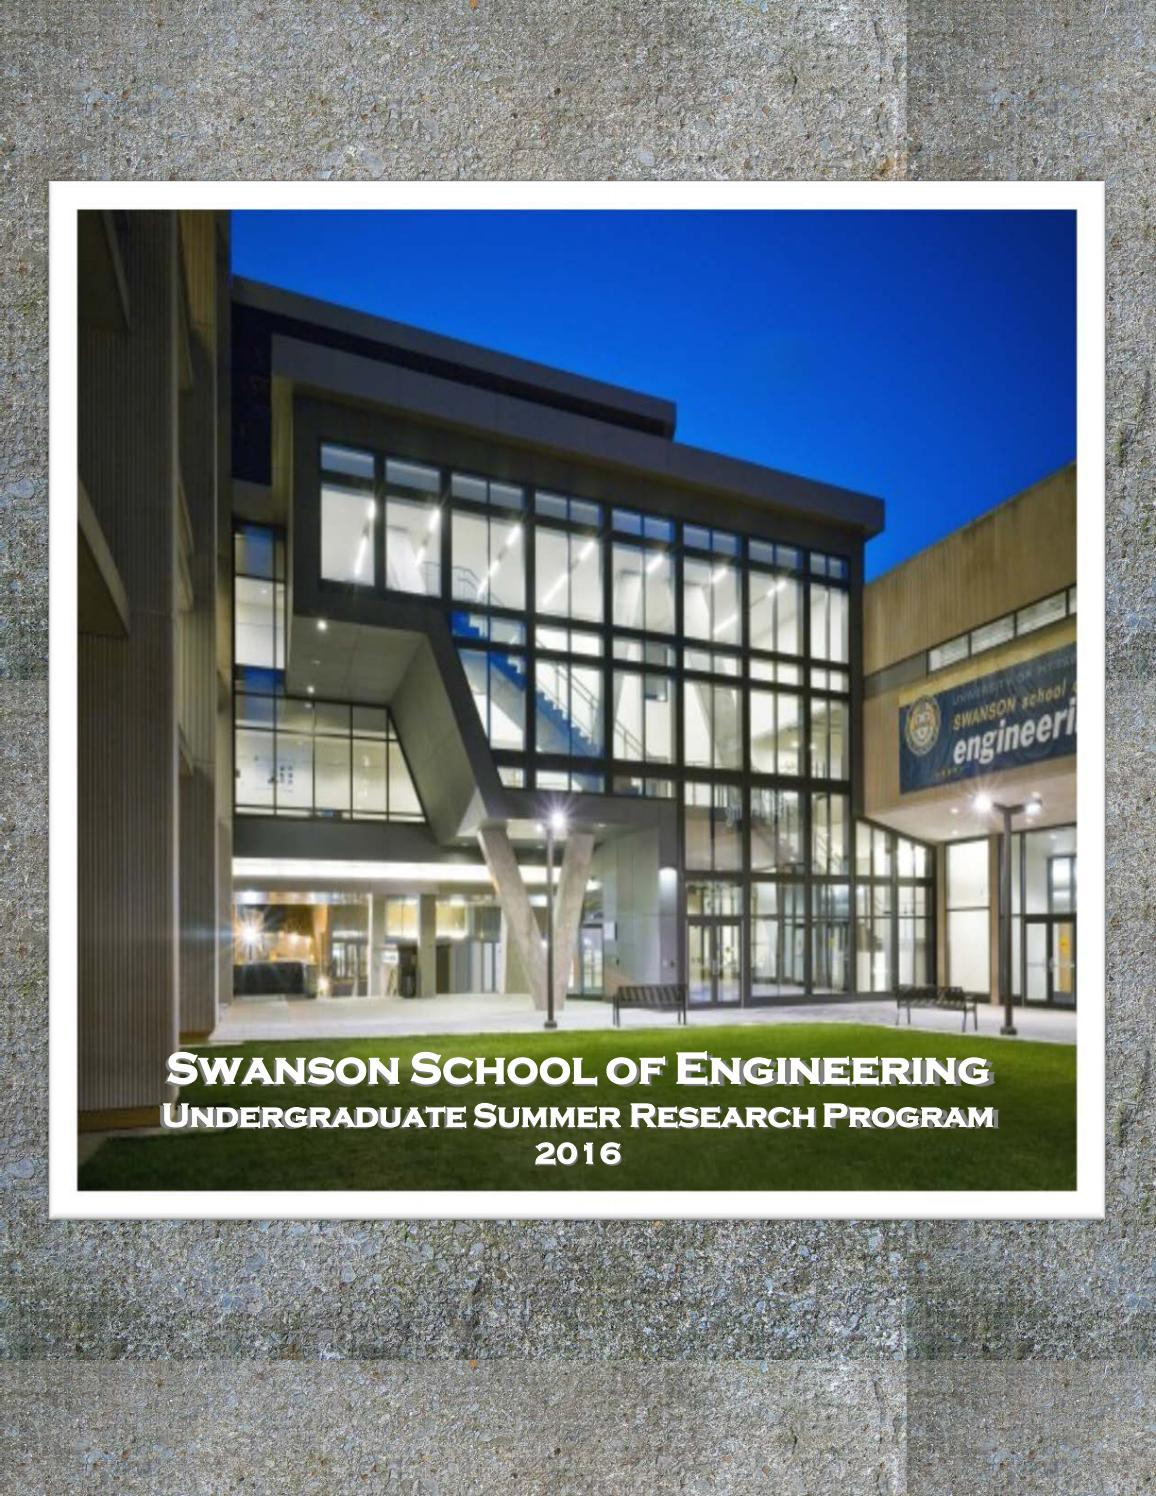 Swanson School of Engineering Undergraduate Summer Research